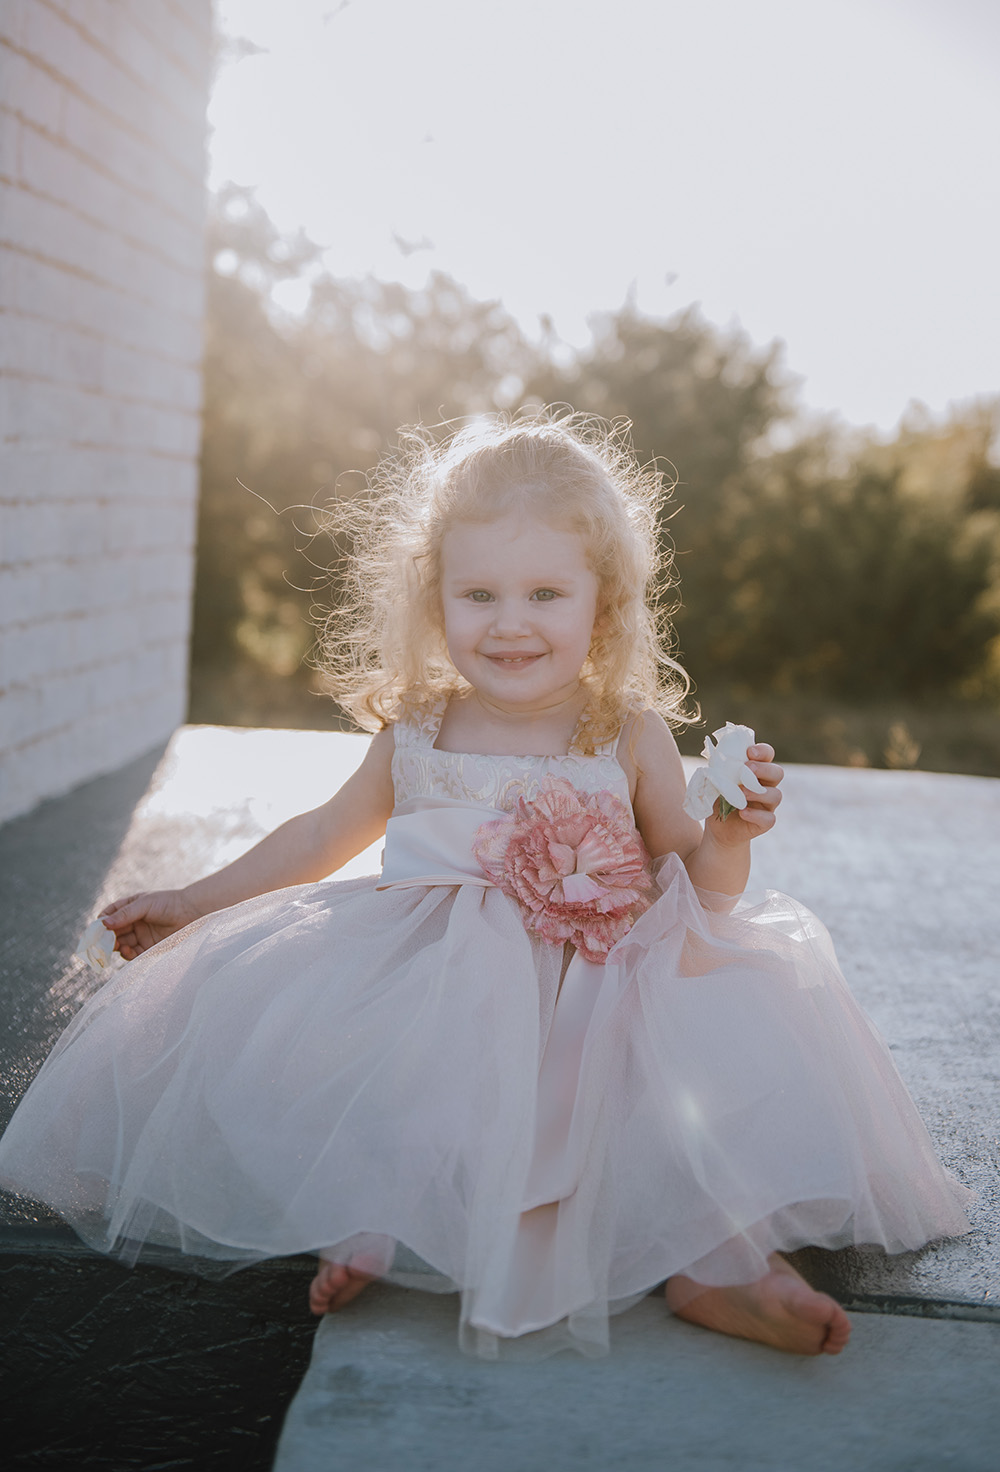 Flower Girl Dresses - The Grand Ivory Wedding - Leonard, Texas Wedding Venue